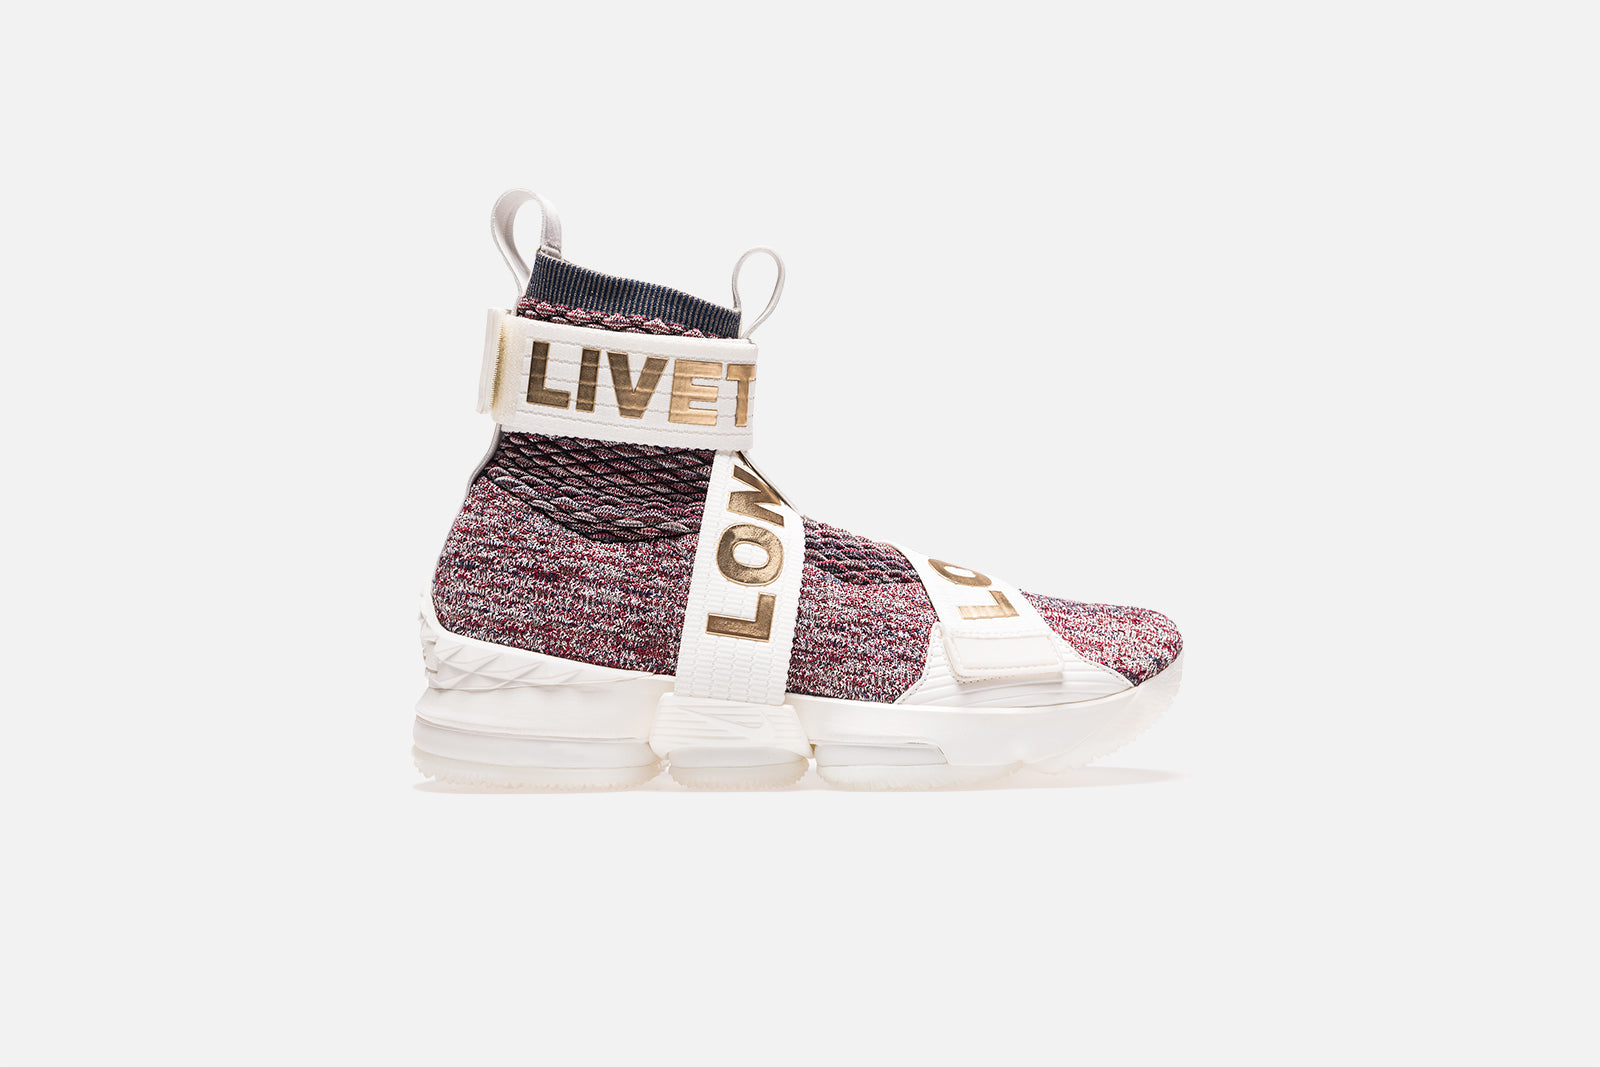 95f314206 norway lebron 15 draw closed 5b942 8a6bb; get kith x nike lebron lifestyle  xv stained glass 38429 6260a